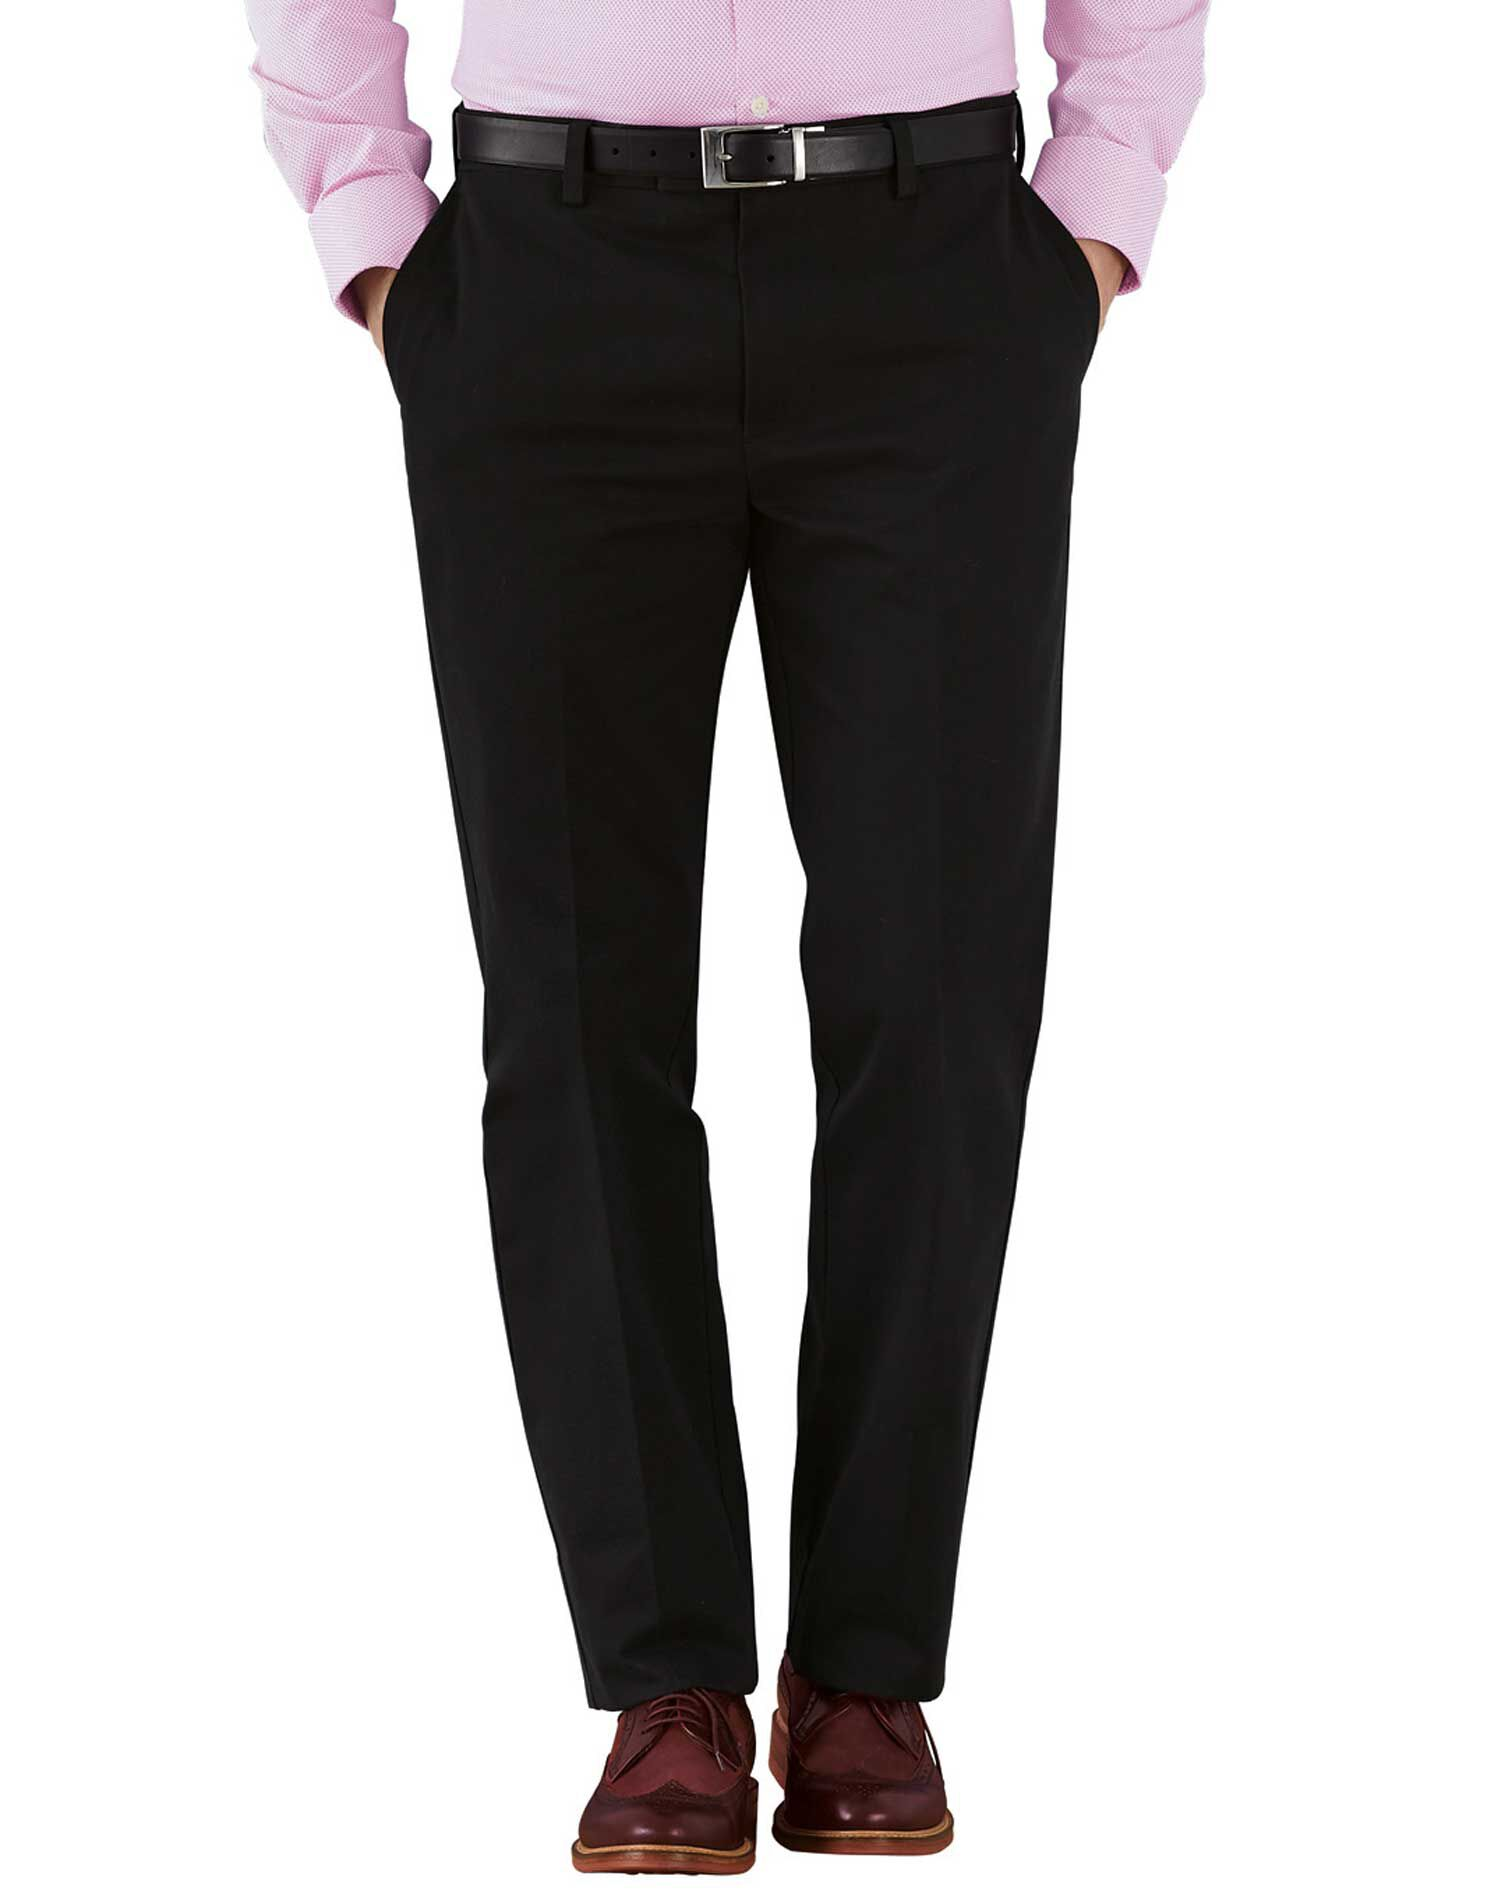 Black Slim Fit Flat Front Non-Iron Cotton Chino Trousers Size W36 L29 by Charles Tyrwhitt